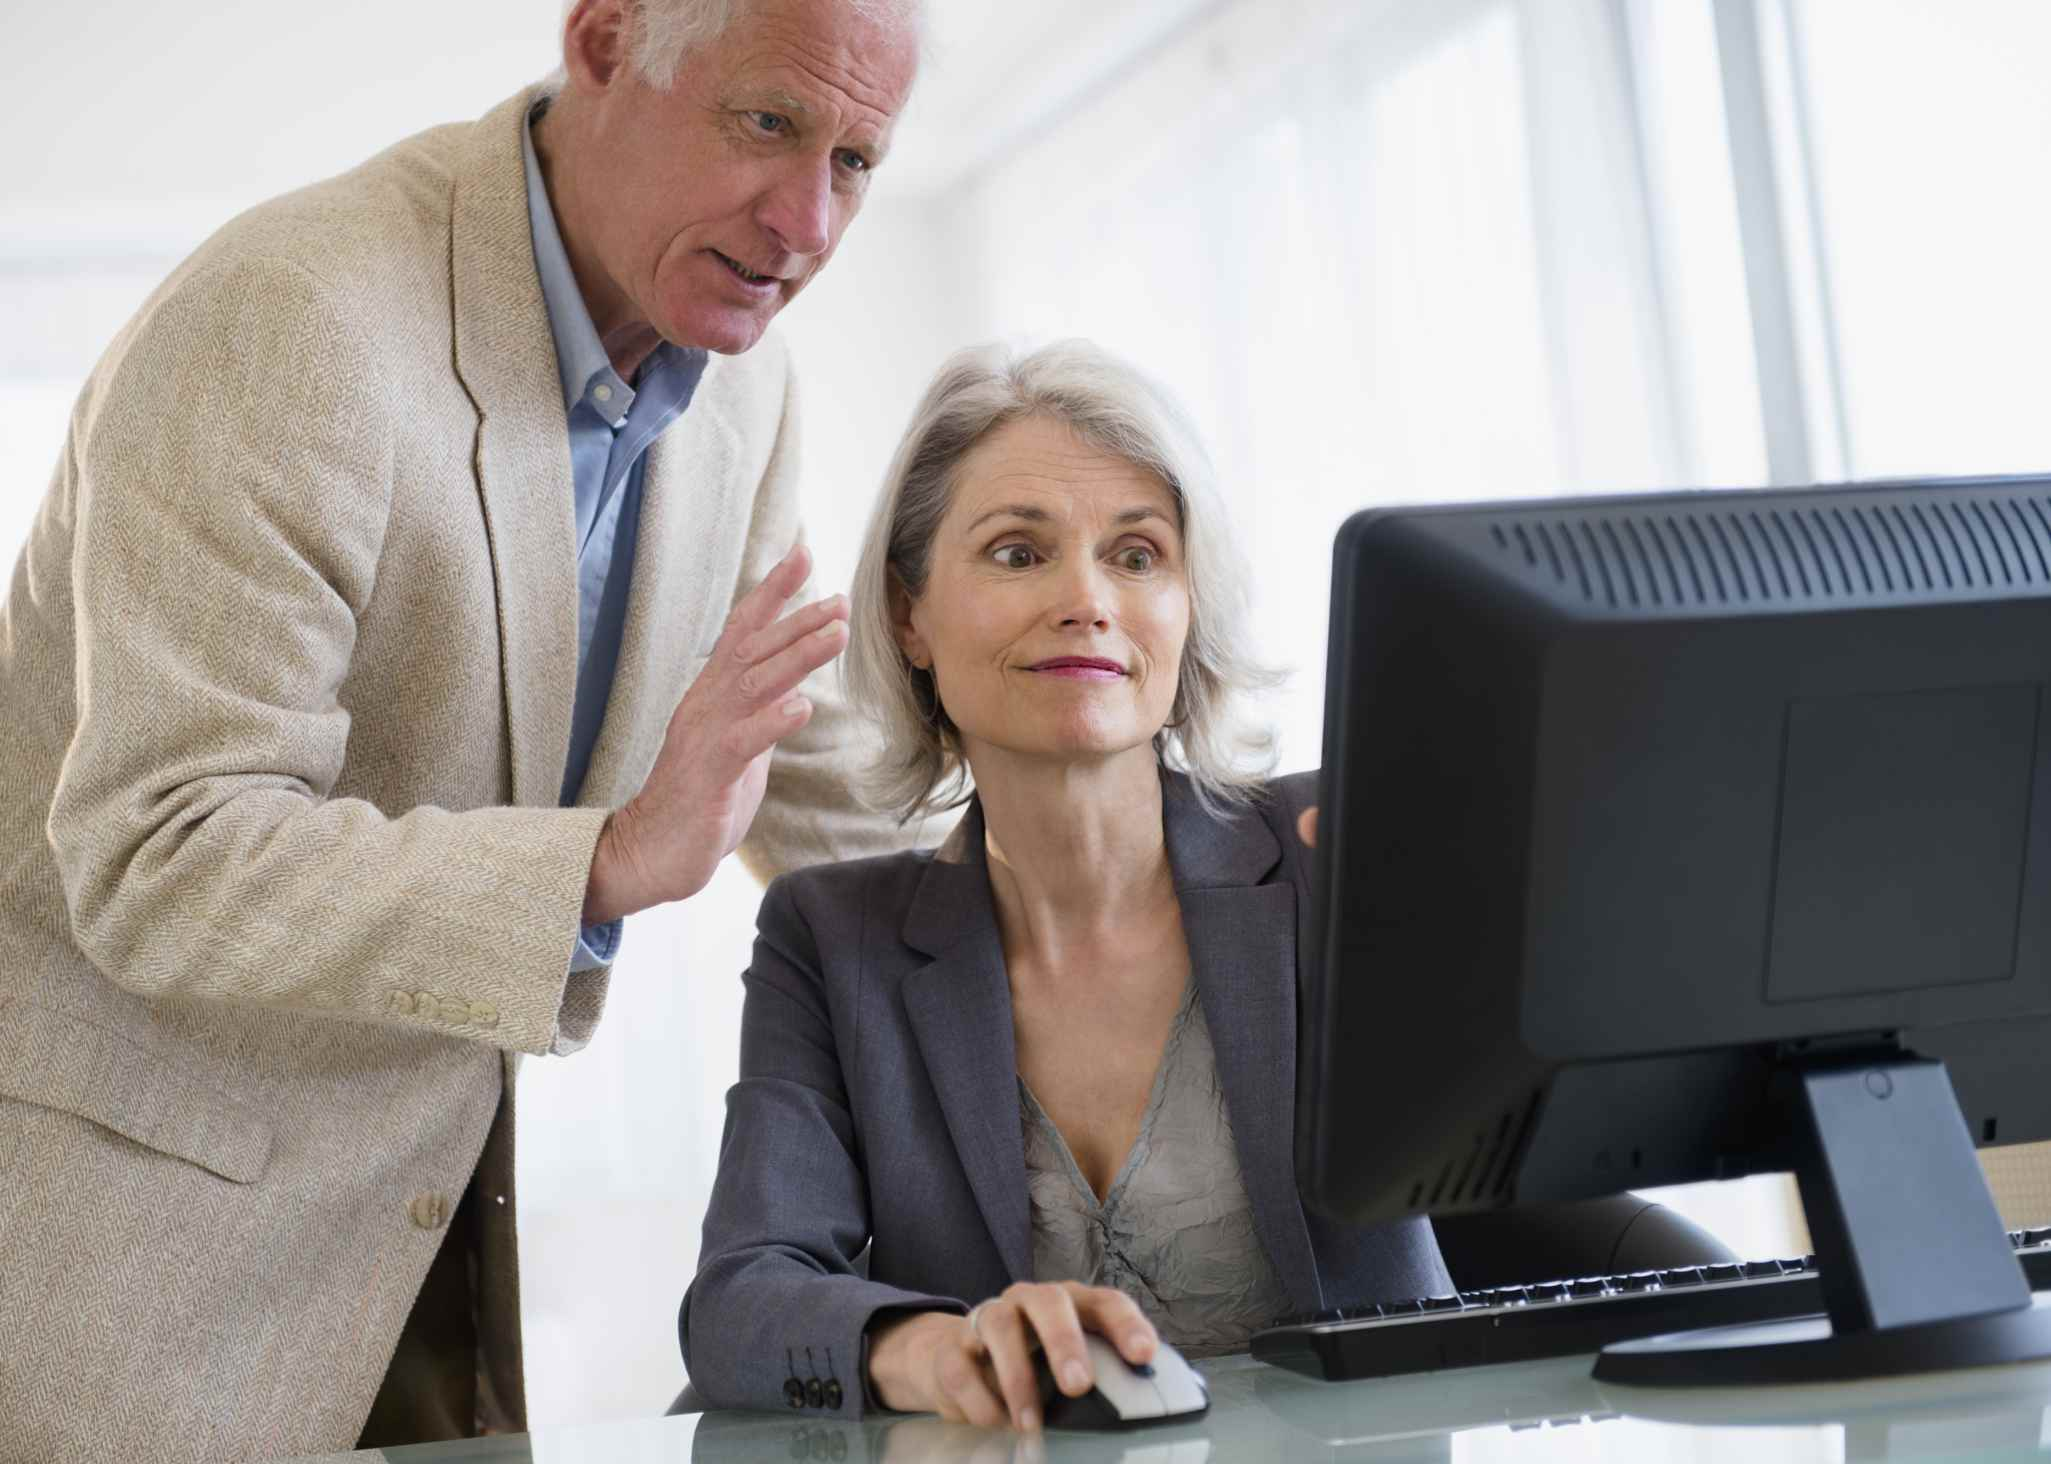 Male and female senior working together at computer